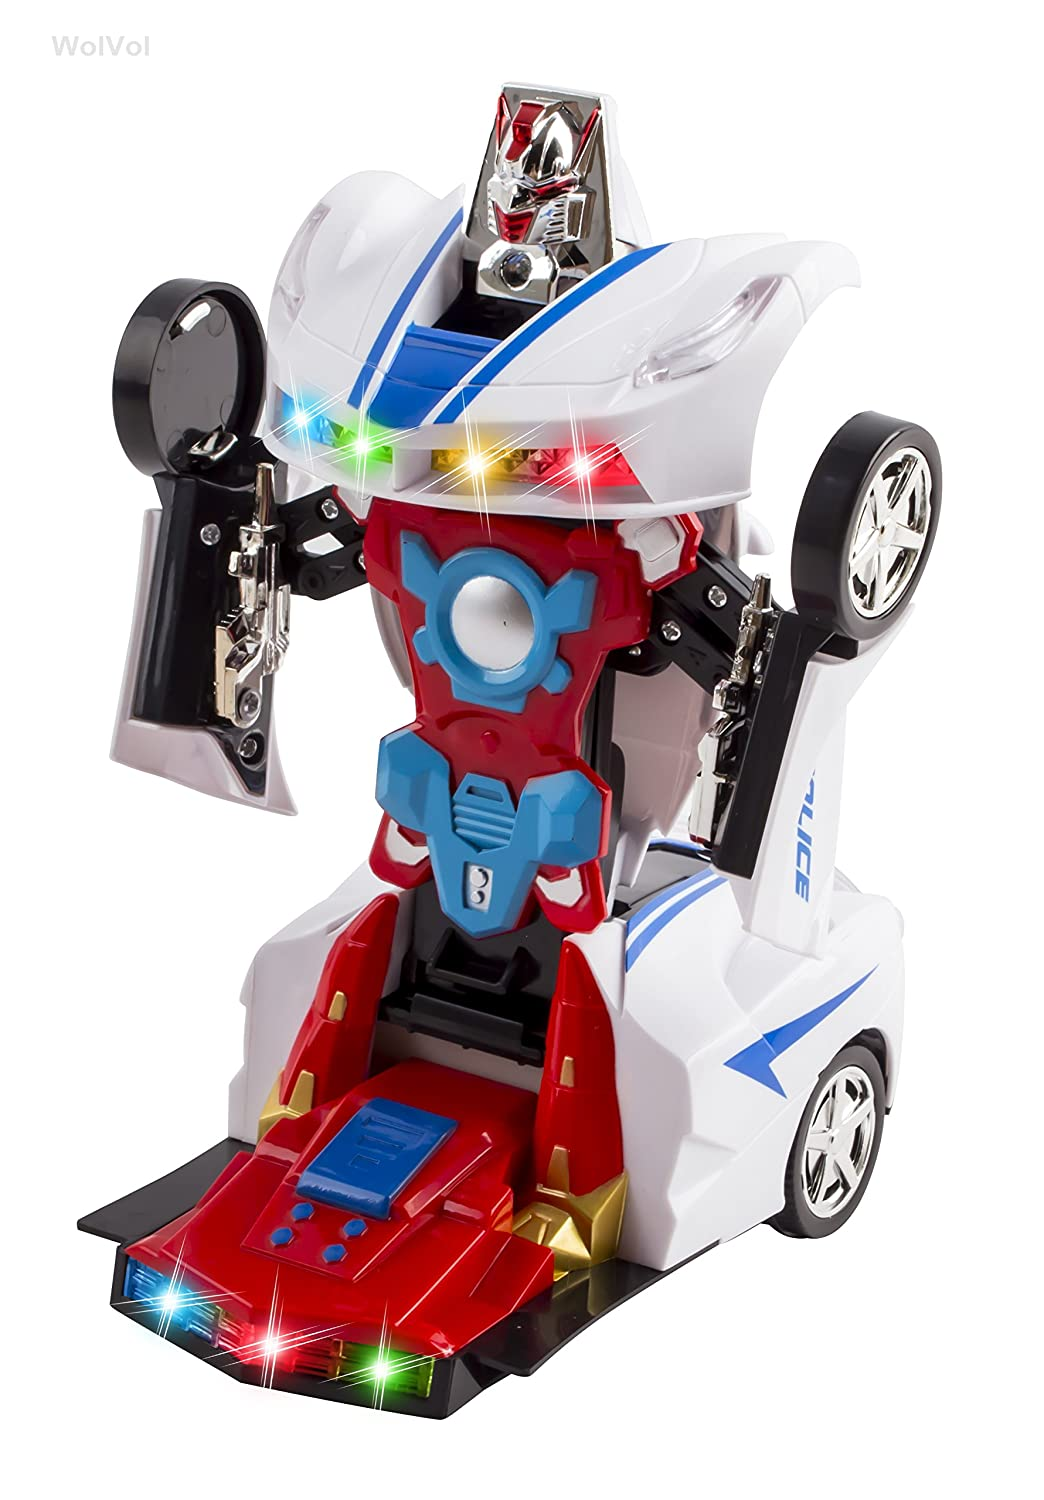 Buy WolVol Transformers Robot Police Car Toy with Lights and